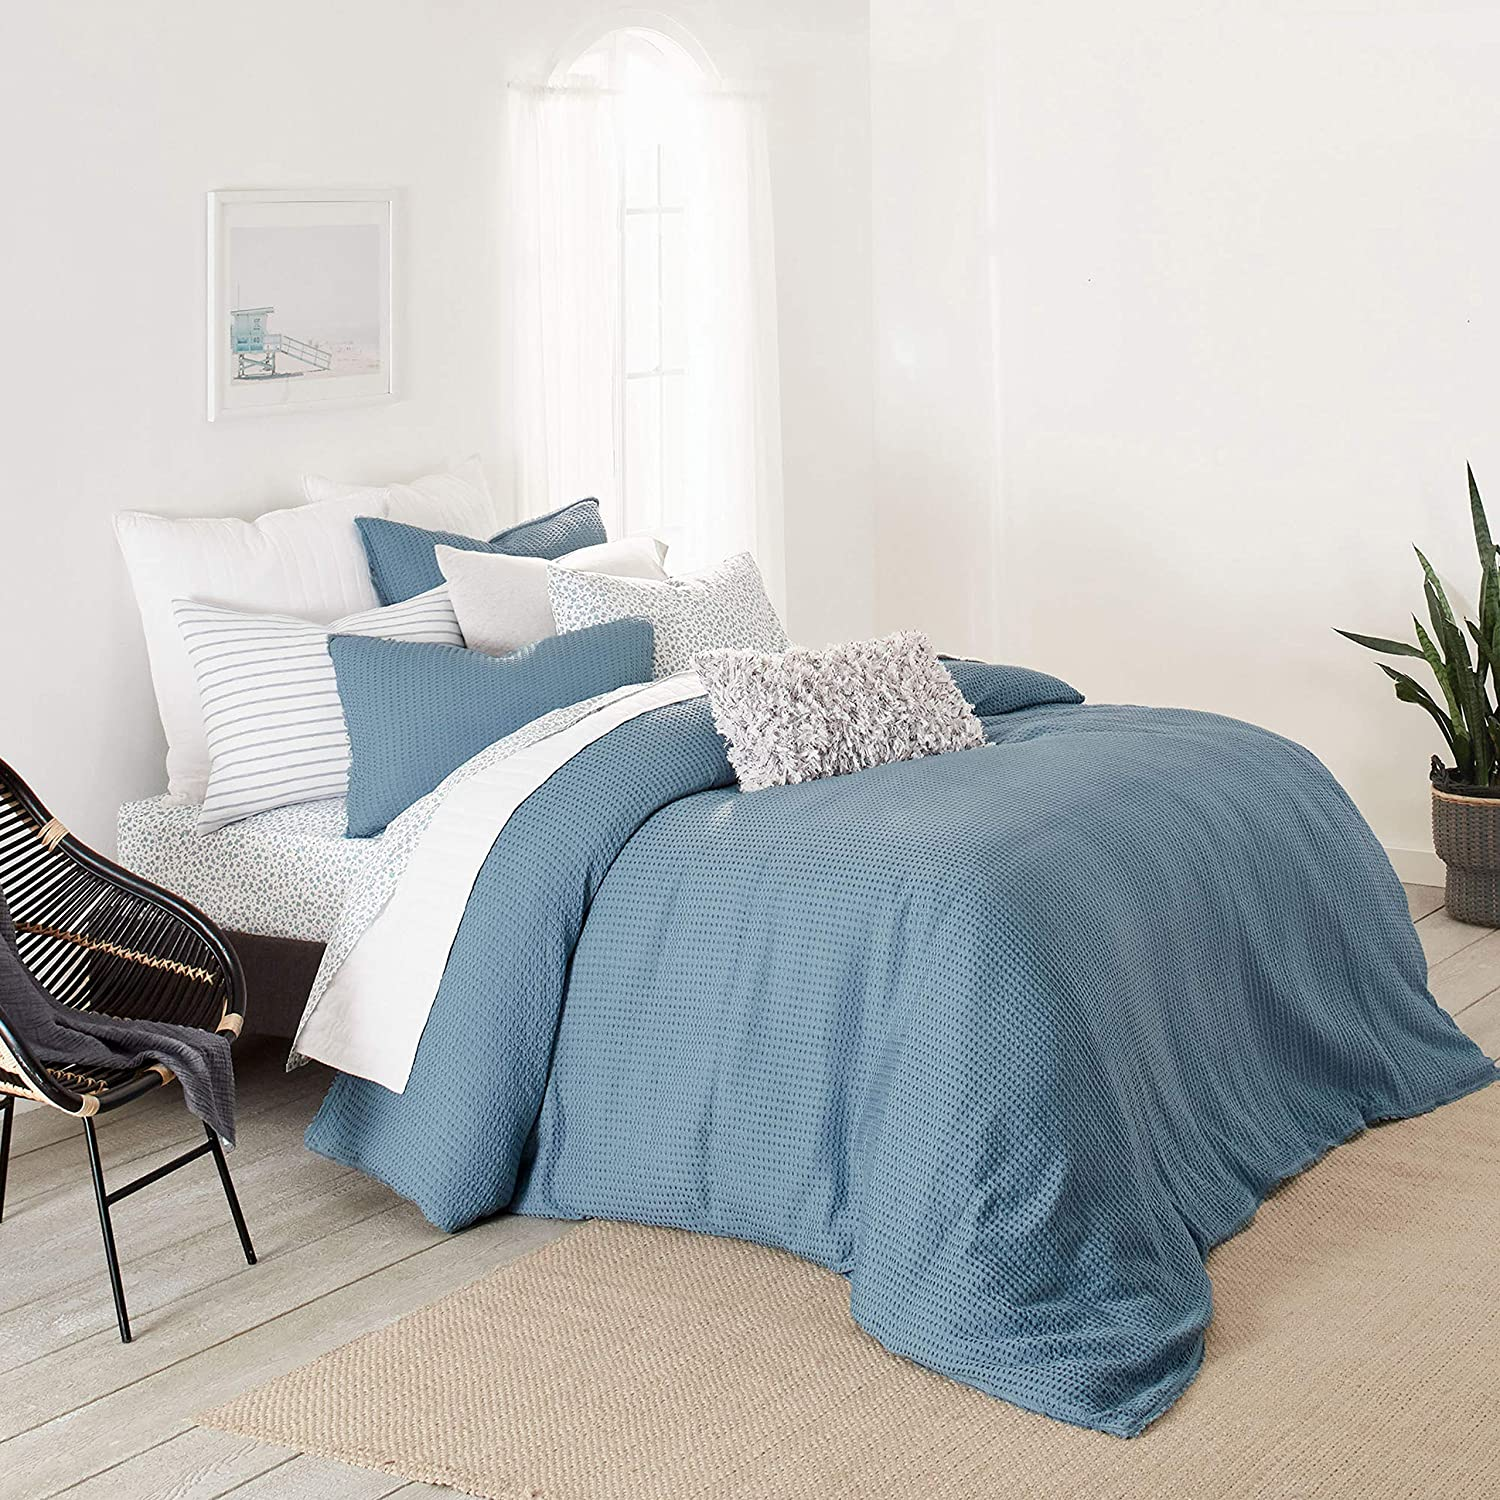 Splendid Home Topanga Comforter Set, Twin, Teal